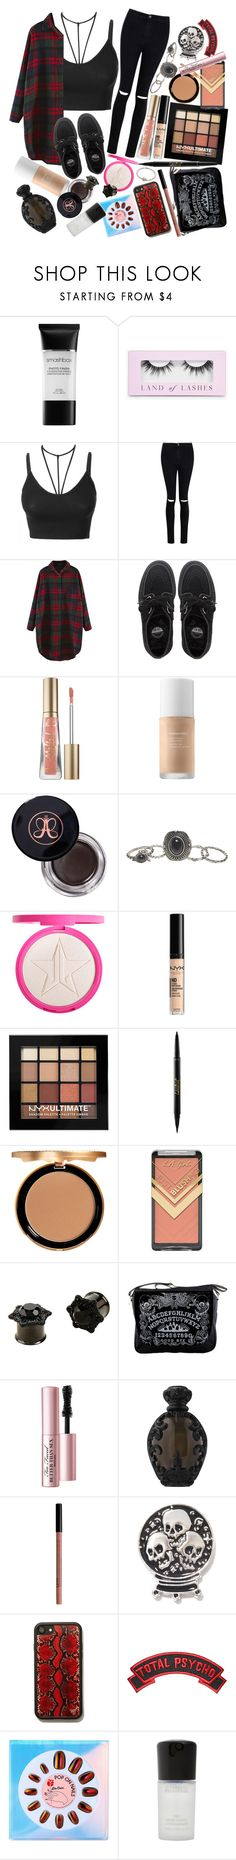 """""""Take a step inside my mind. As my eyes are open wide. In my sleep I turn and toss. To rebuild the heart I lost."""" by thelyricsmatter ❤ liked on Polyvore featuring Smashbox, Boohoo, LE3NO, Underground, Too Faced Cosmetics, Anastasia Beverly Hills, Wet Seal, NYX, tarte and Hot Topic"""